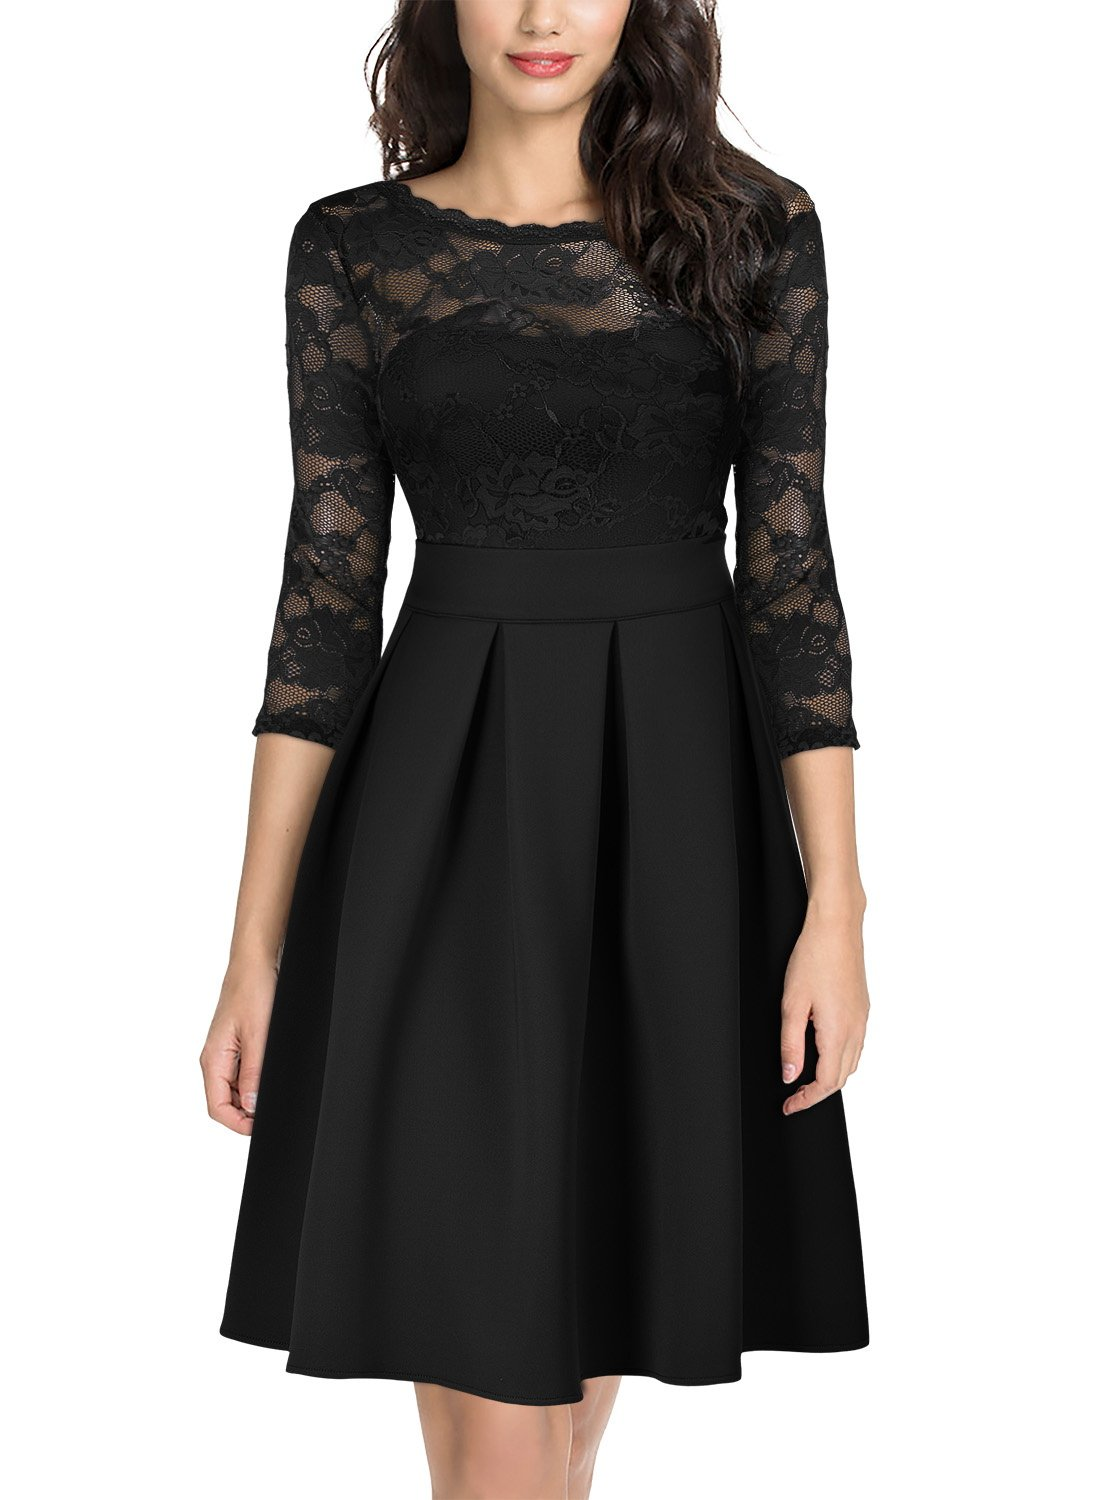 Wedding Guest Dresses - Women's Vintage Floral Lace Long Sleeve Boat Neck Cocktail Party Swing Dress